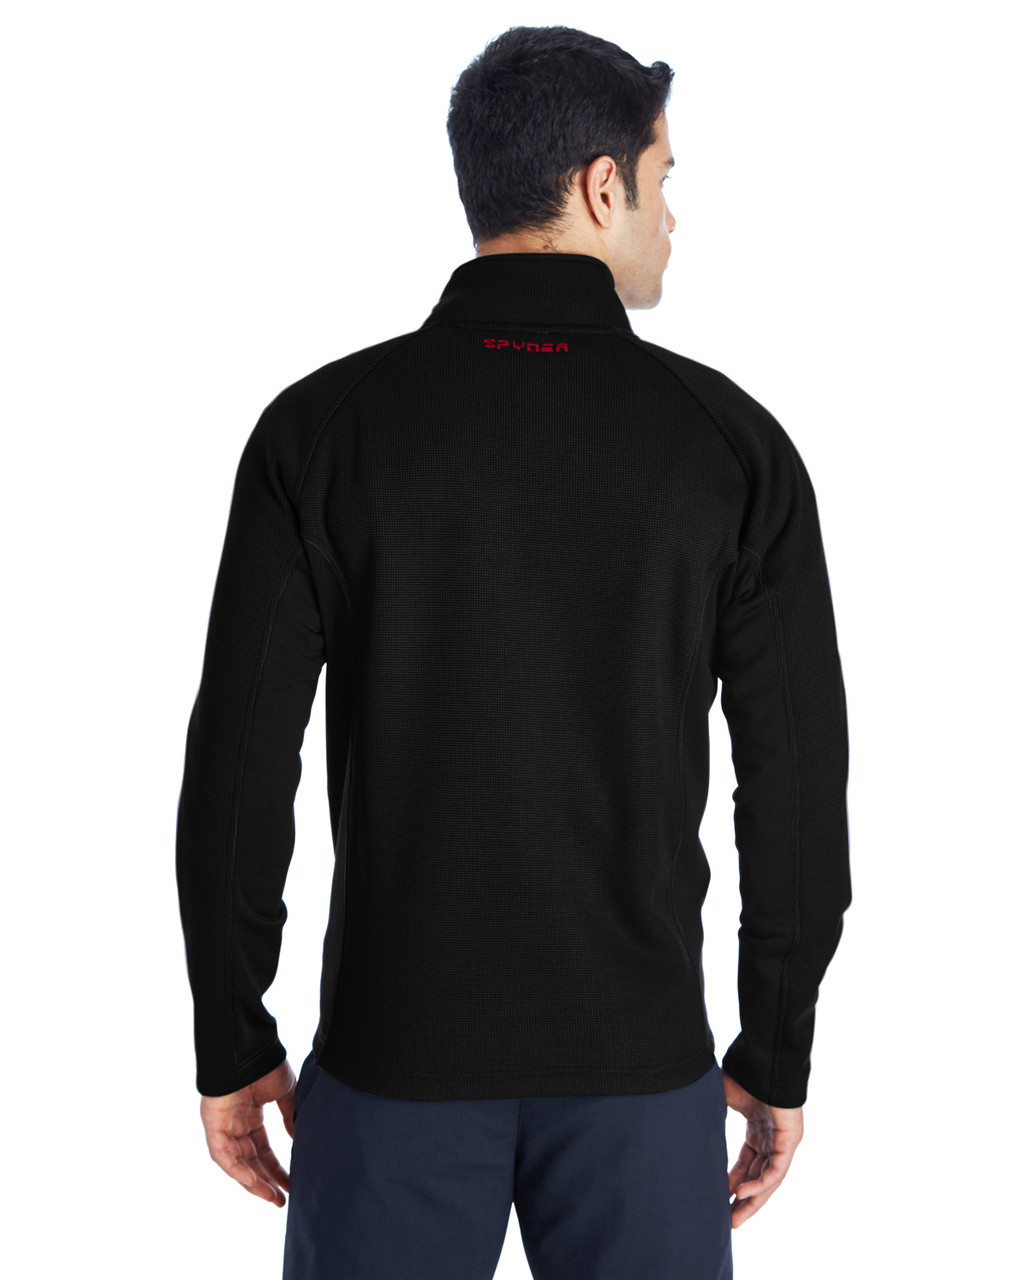 Black/Black/Red - Back, 187330 Spyder Constant Full-Zip Sweater | BlankClothing.ca